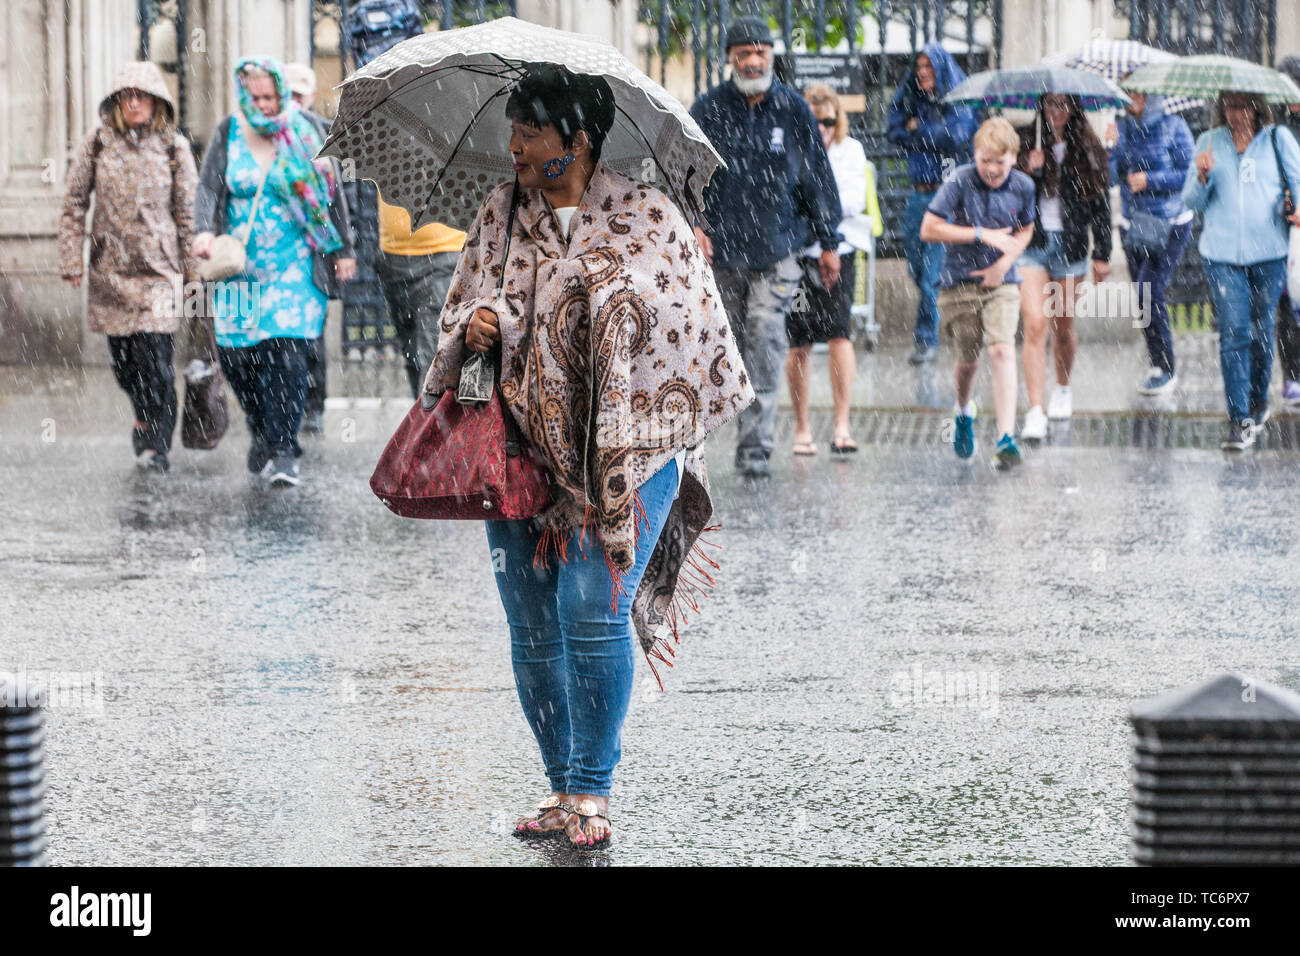 London, UK. 6 June, 2019. Members of the public seek shelter outside the Palace of Westminster during a sudden rain shower. Scattered showers are forecast for the remainder of the day, with heavy rain to follow tomorrow. Credit: Mark Kerrison/Alamy Live News - Stock Image